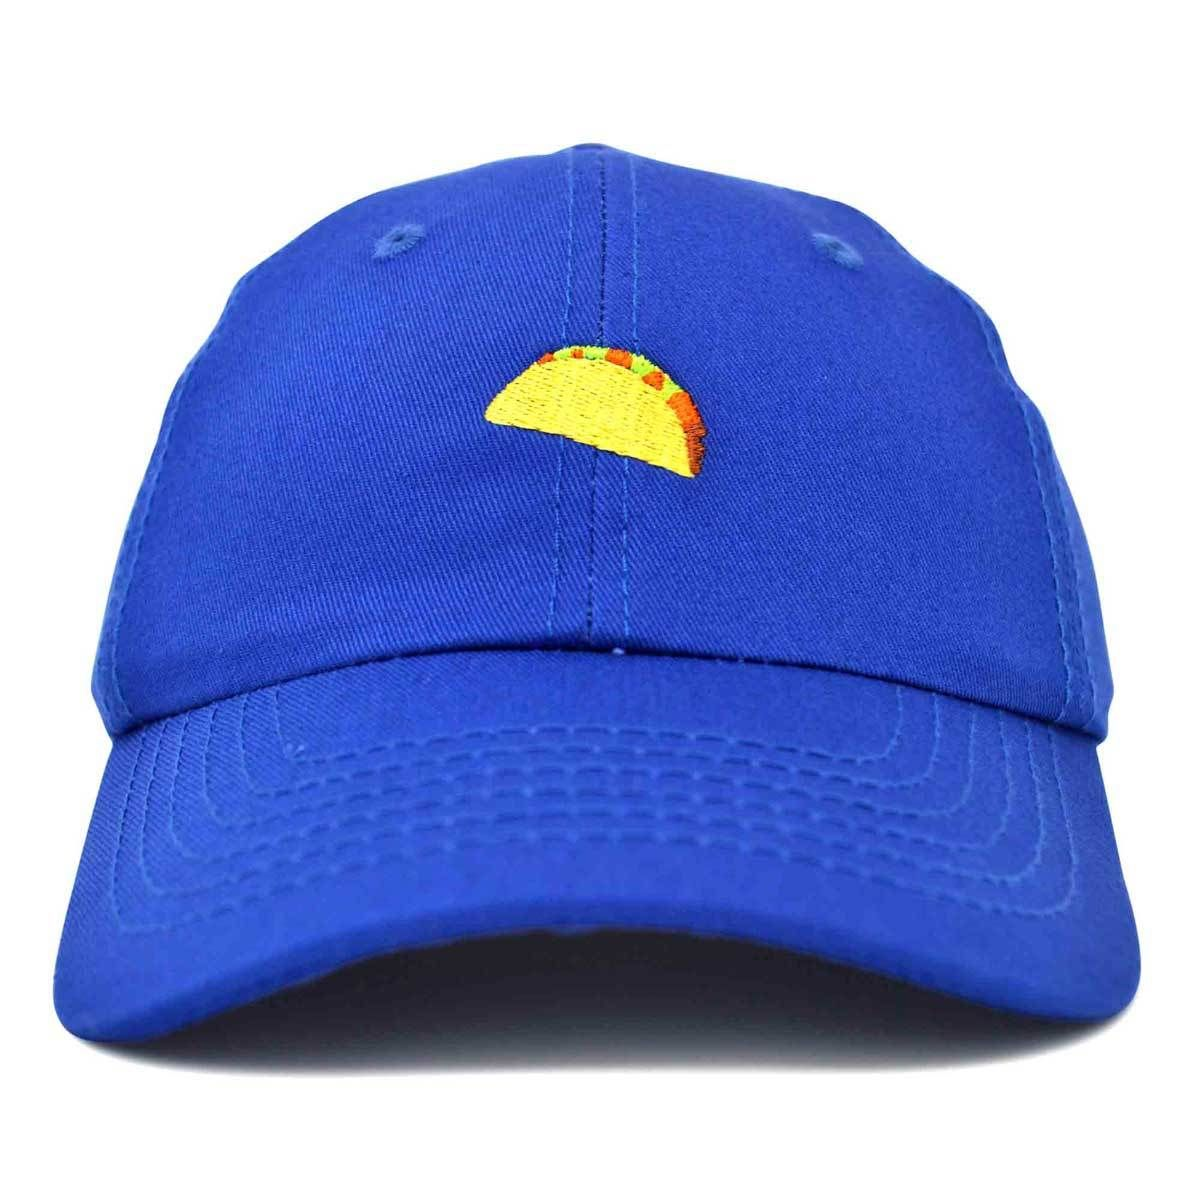 071d4f0494b1d Taco Dad Hat Baseball Cap For Men Womens Emoji Caps in 2019 ...